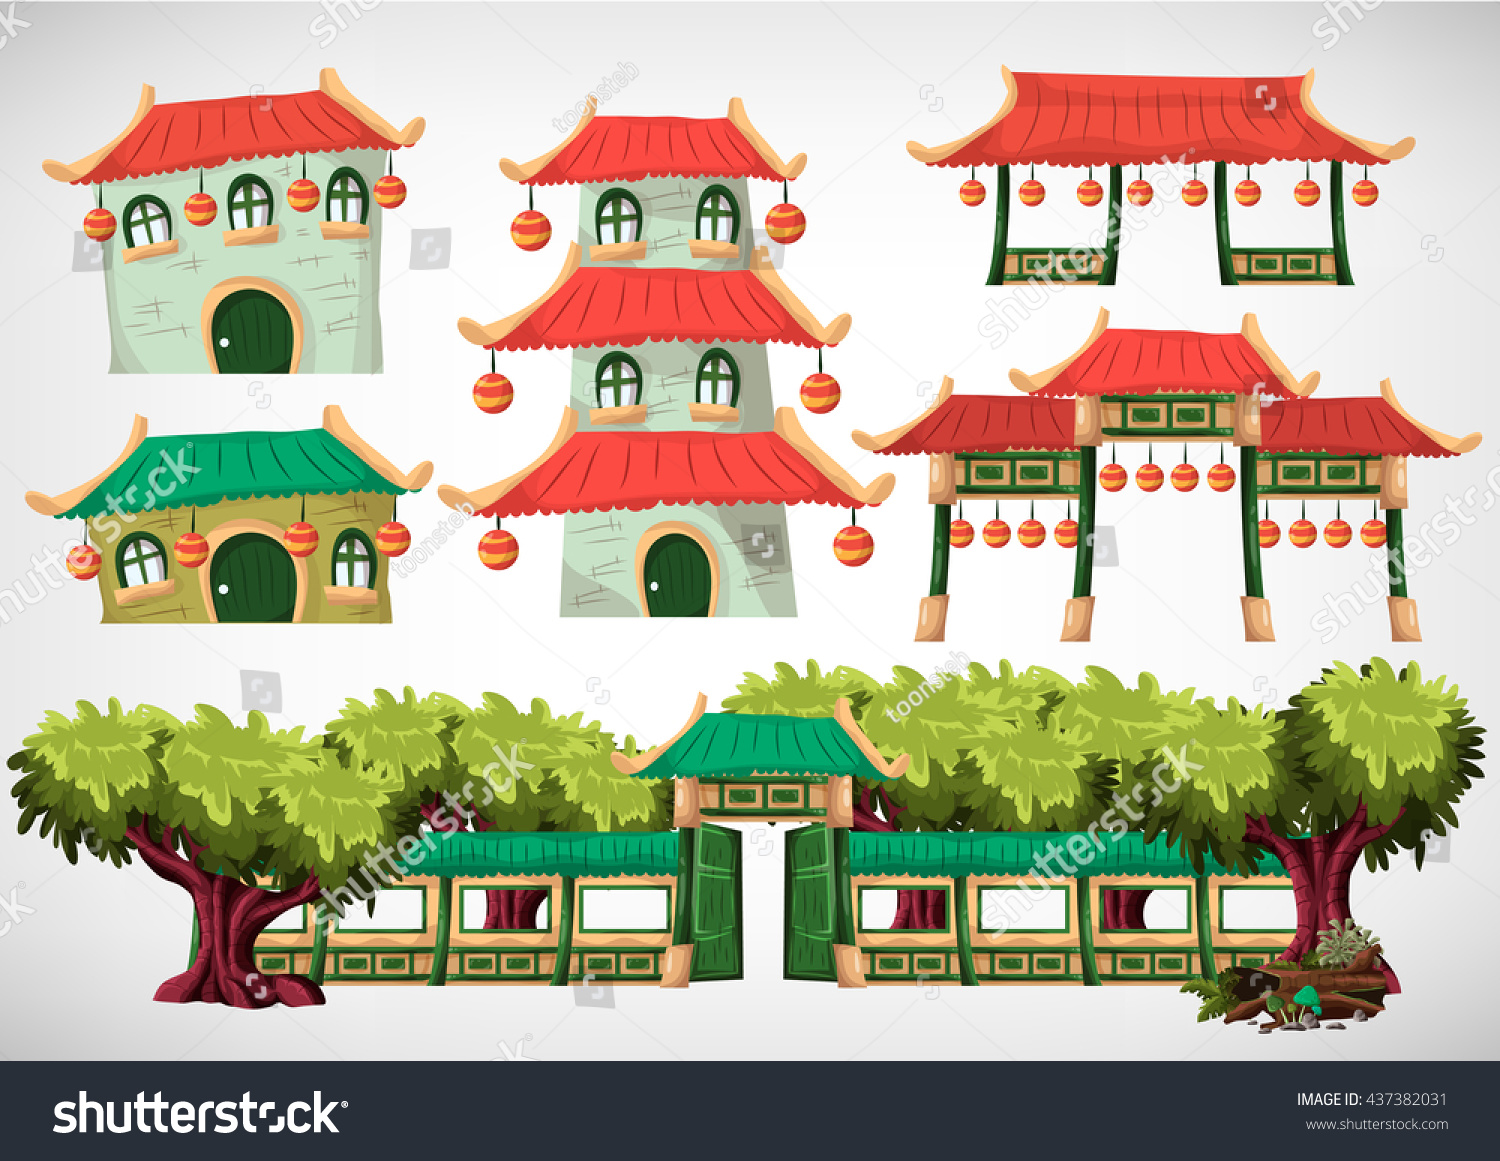 Design A House From Scratch Game House Design